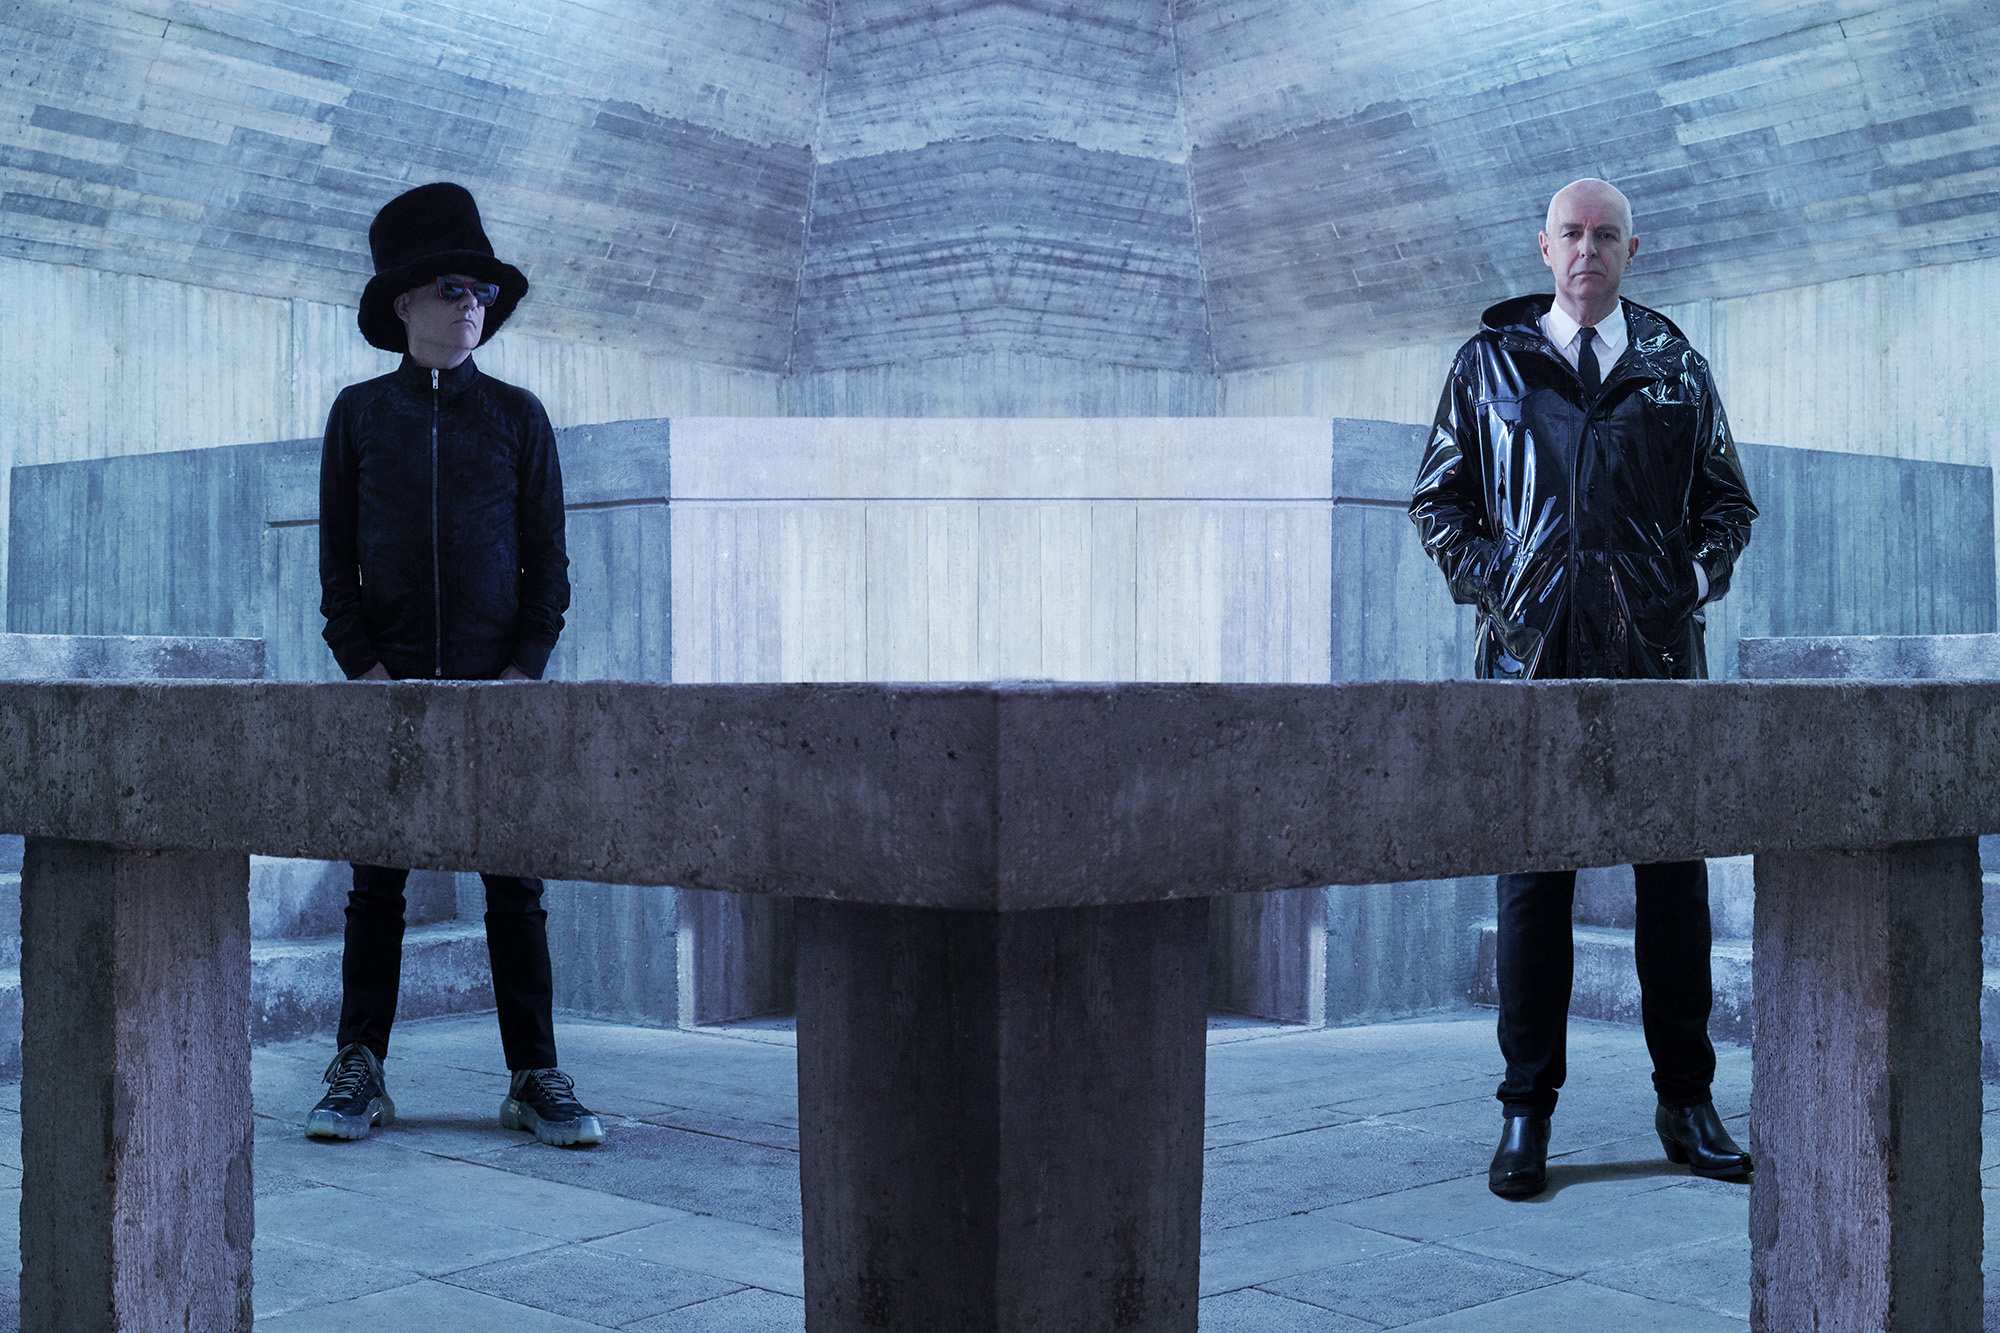 Pet Shop Boys Deliver Another Glorious, Smart, and Relevant Pop Album with 'Hotspot'